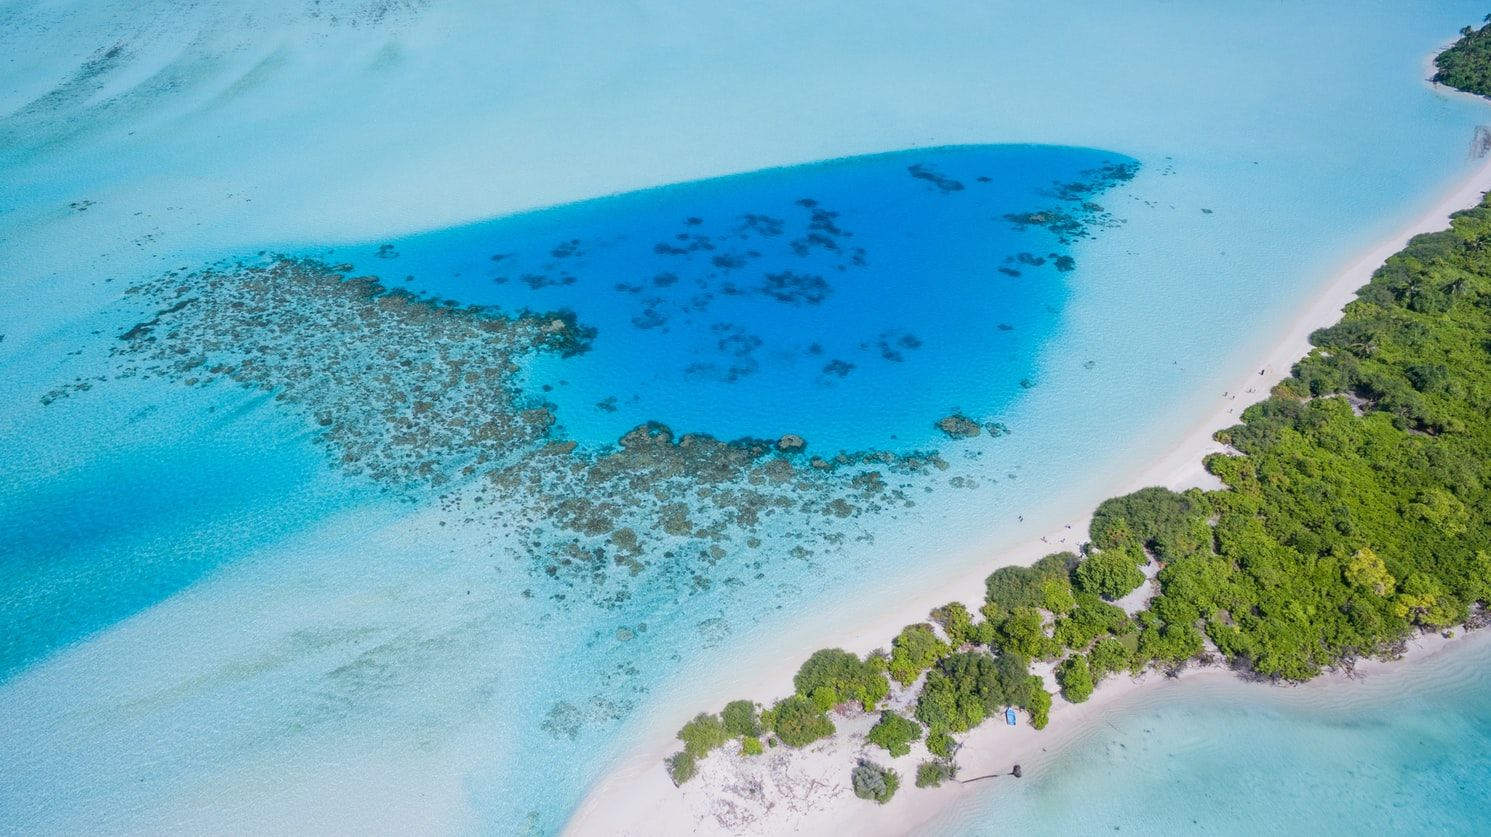 Maldives Tropical Island Aerial Photography Drone Aerial View Ways To Travel